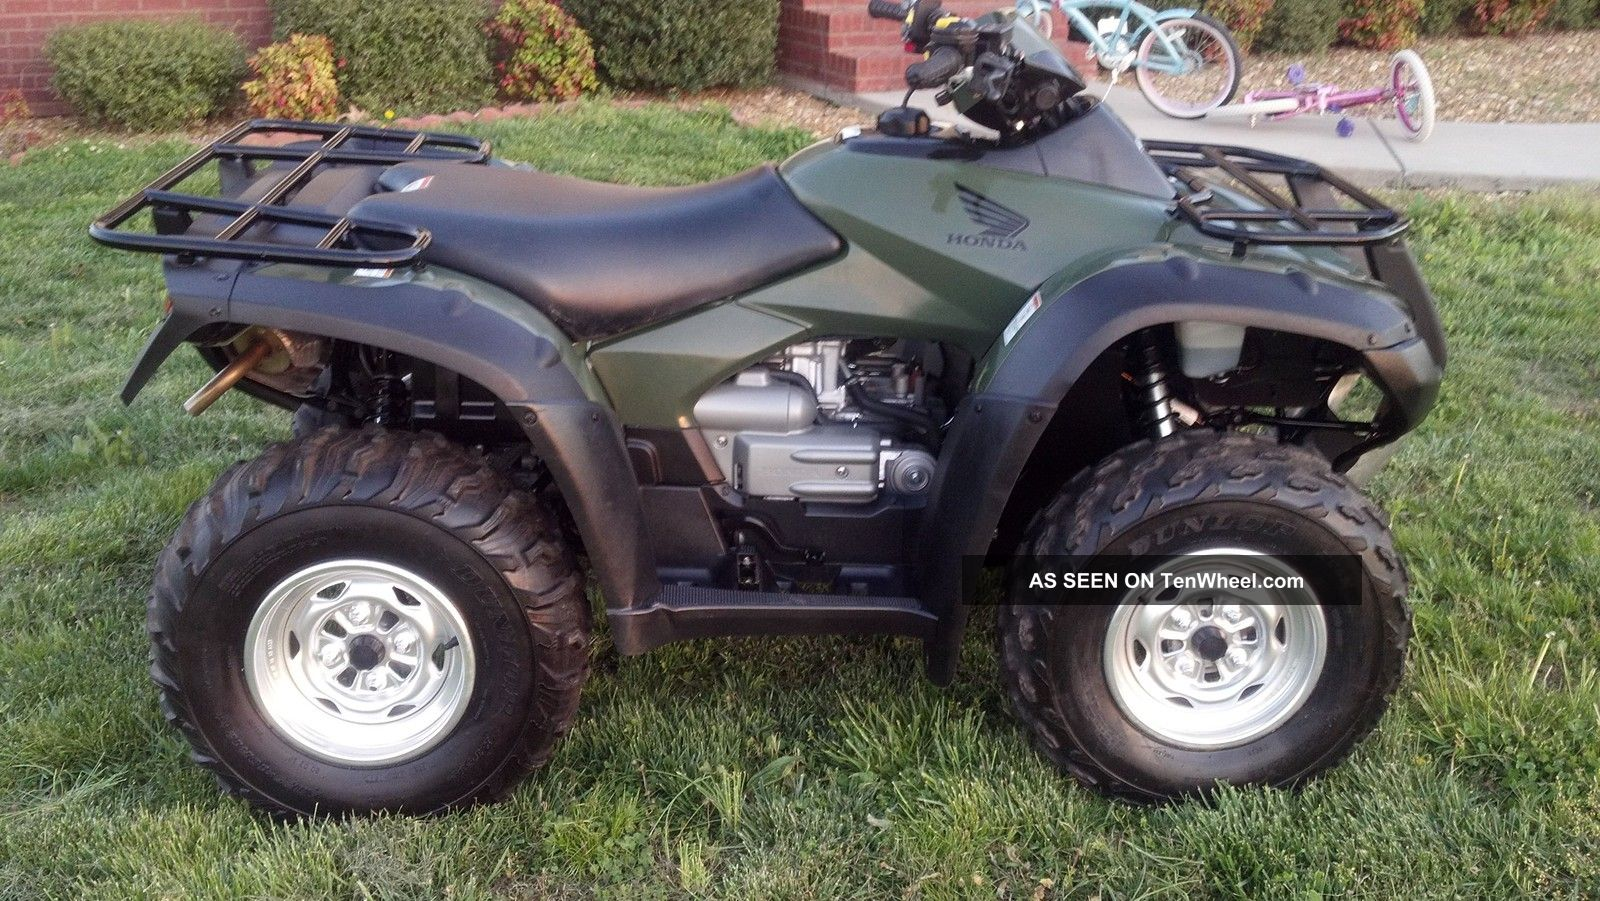 polaris sportsman transmission with 16741 2012 Honda Honda Rincon 680 Fi Irs on Tm 250 also 2004 2013 Polaris 400 450 500 Sportsman Carburated Atv Online Service Manual together with 26308 2008 yamaha grizzly 700 furthermore Watch further Carburetor Yamaha 350 400.